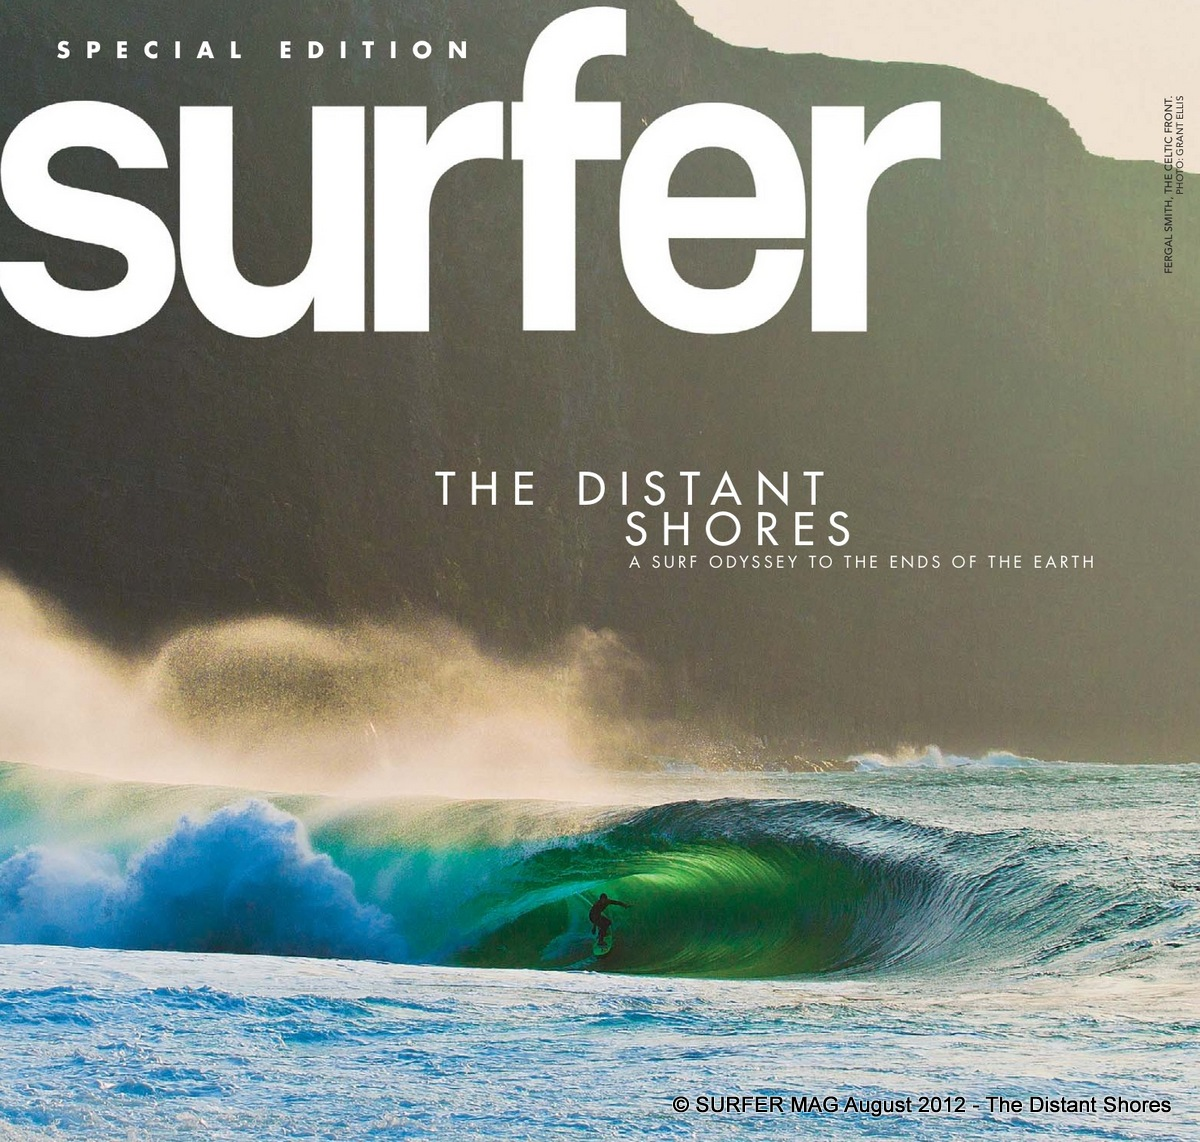 The Distant Shores - SURFER Mag copyright (3)